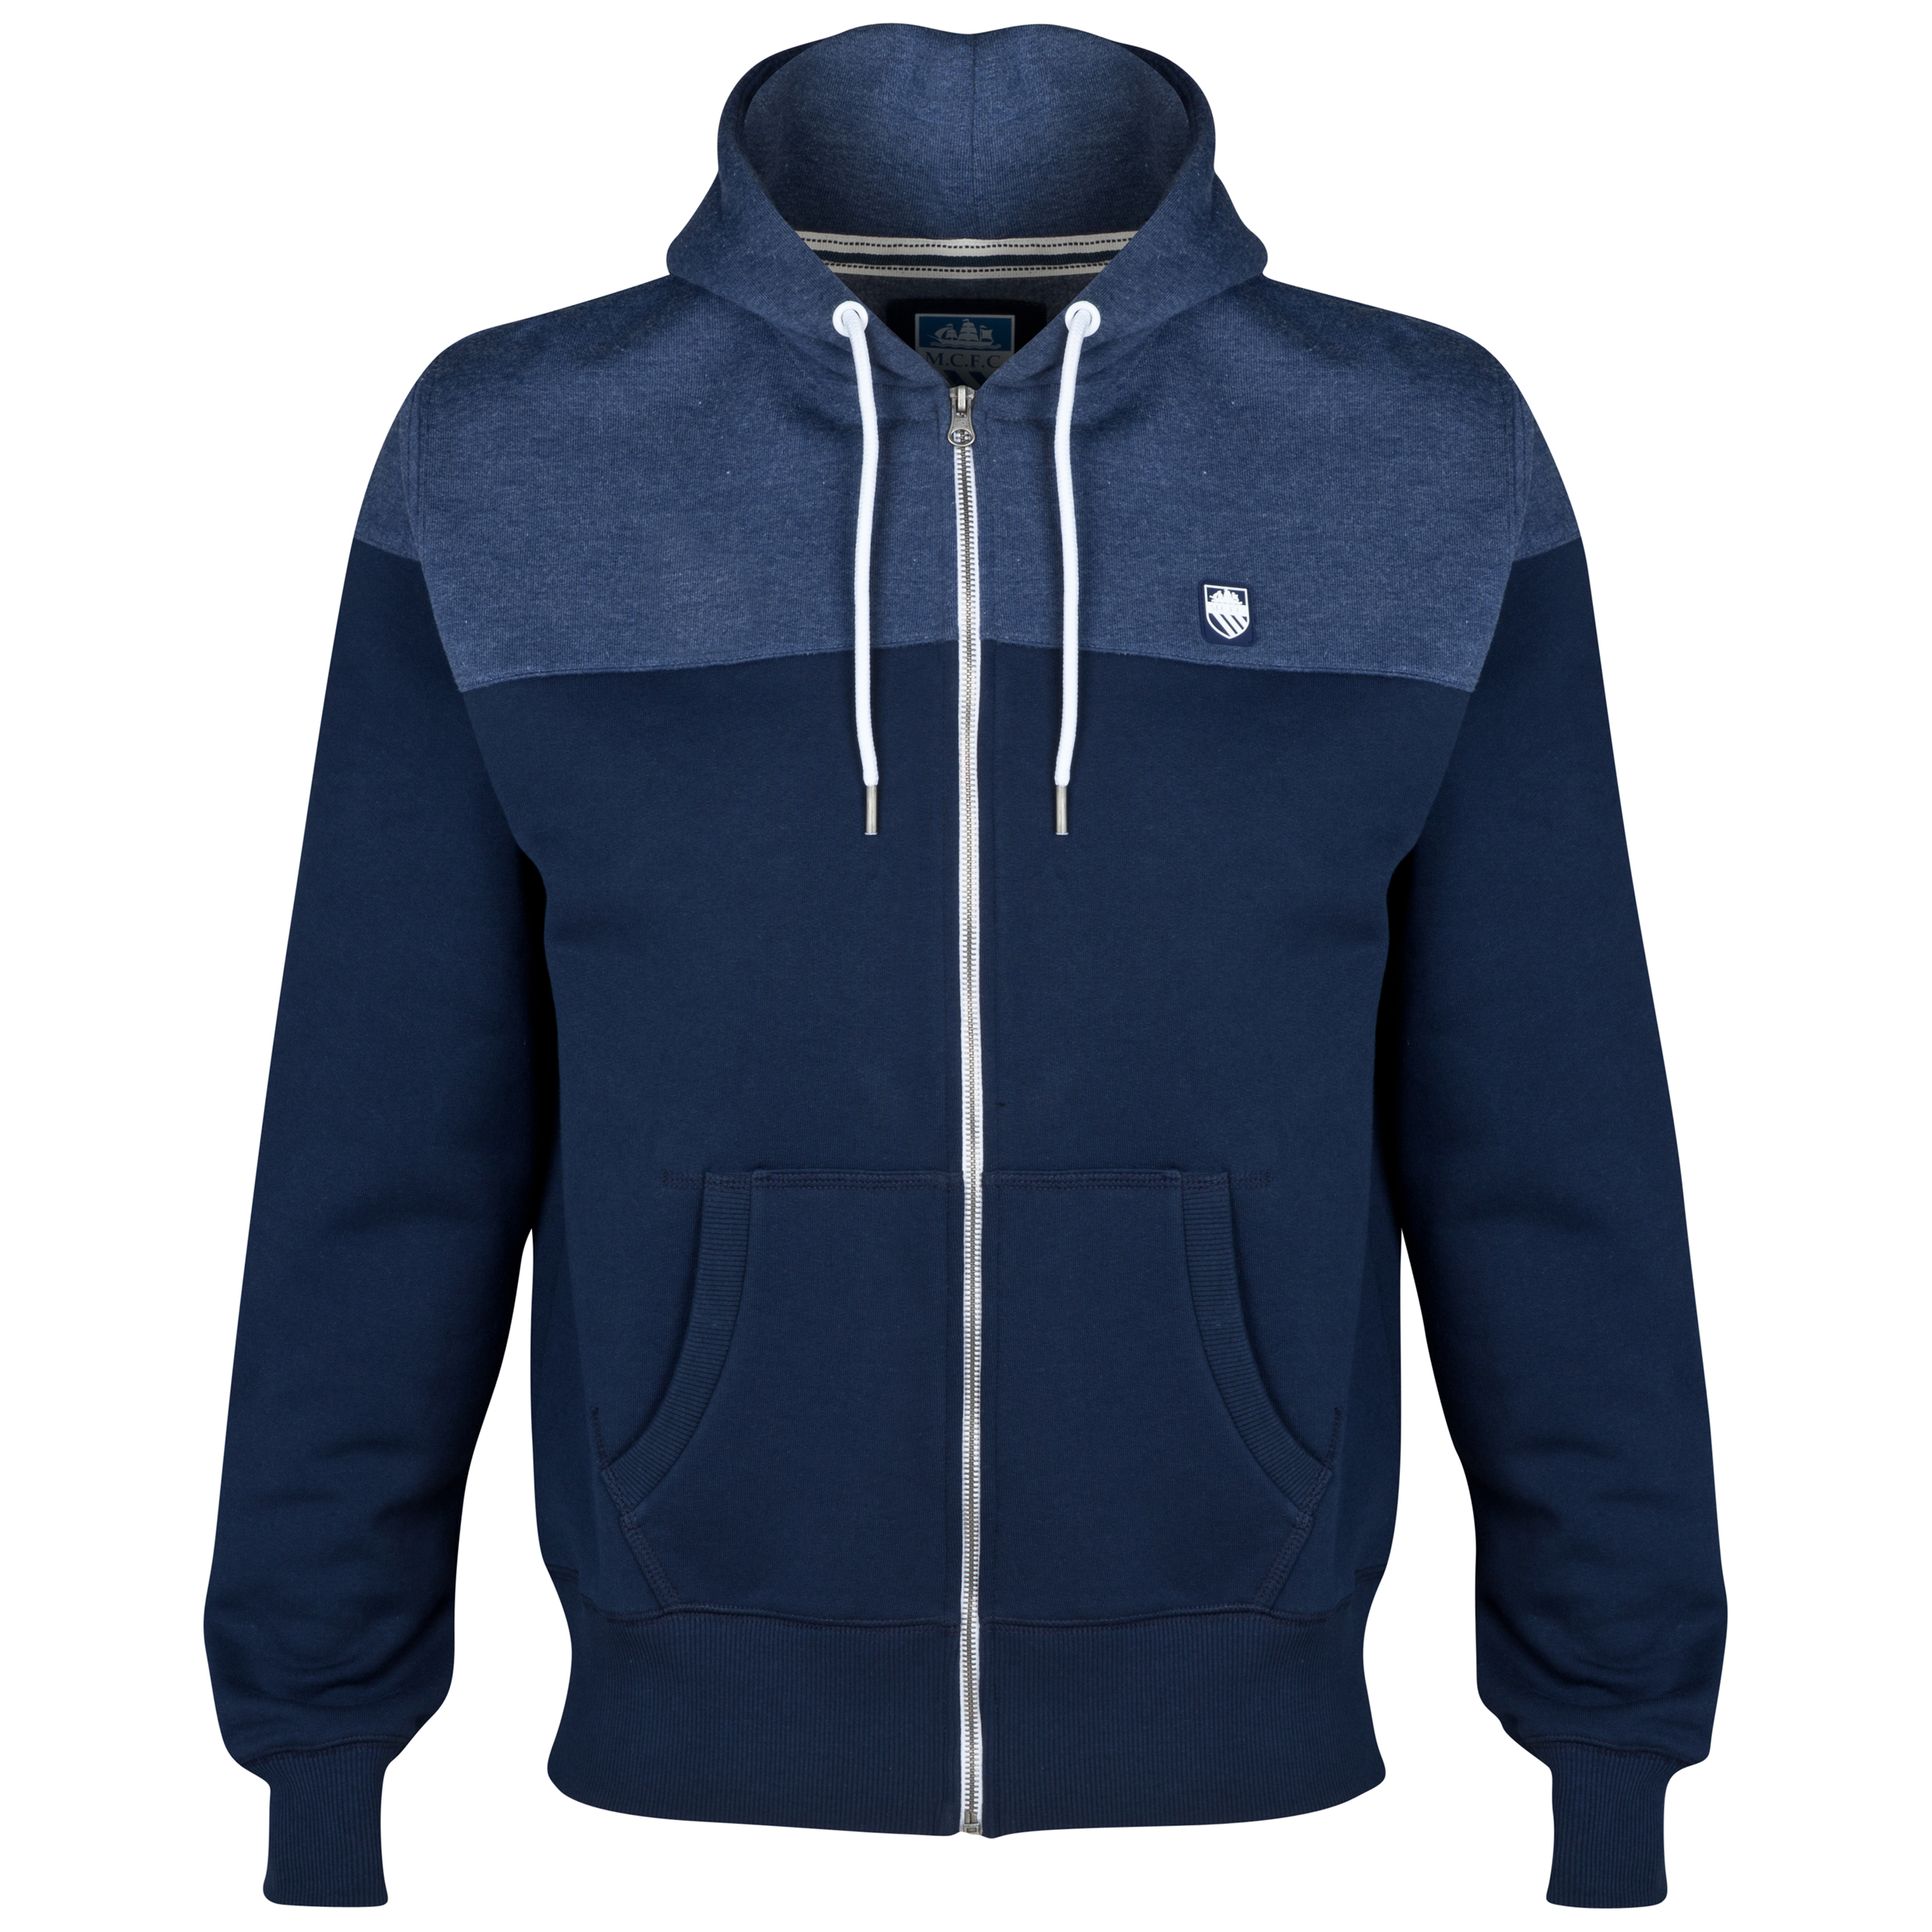 Manchester City Cross Hoodie-Older Boys Navy